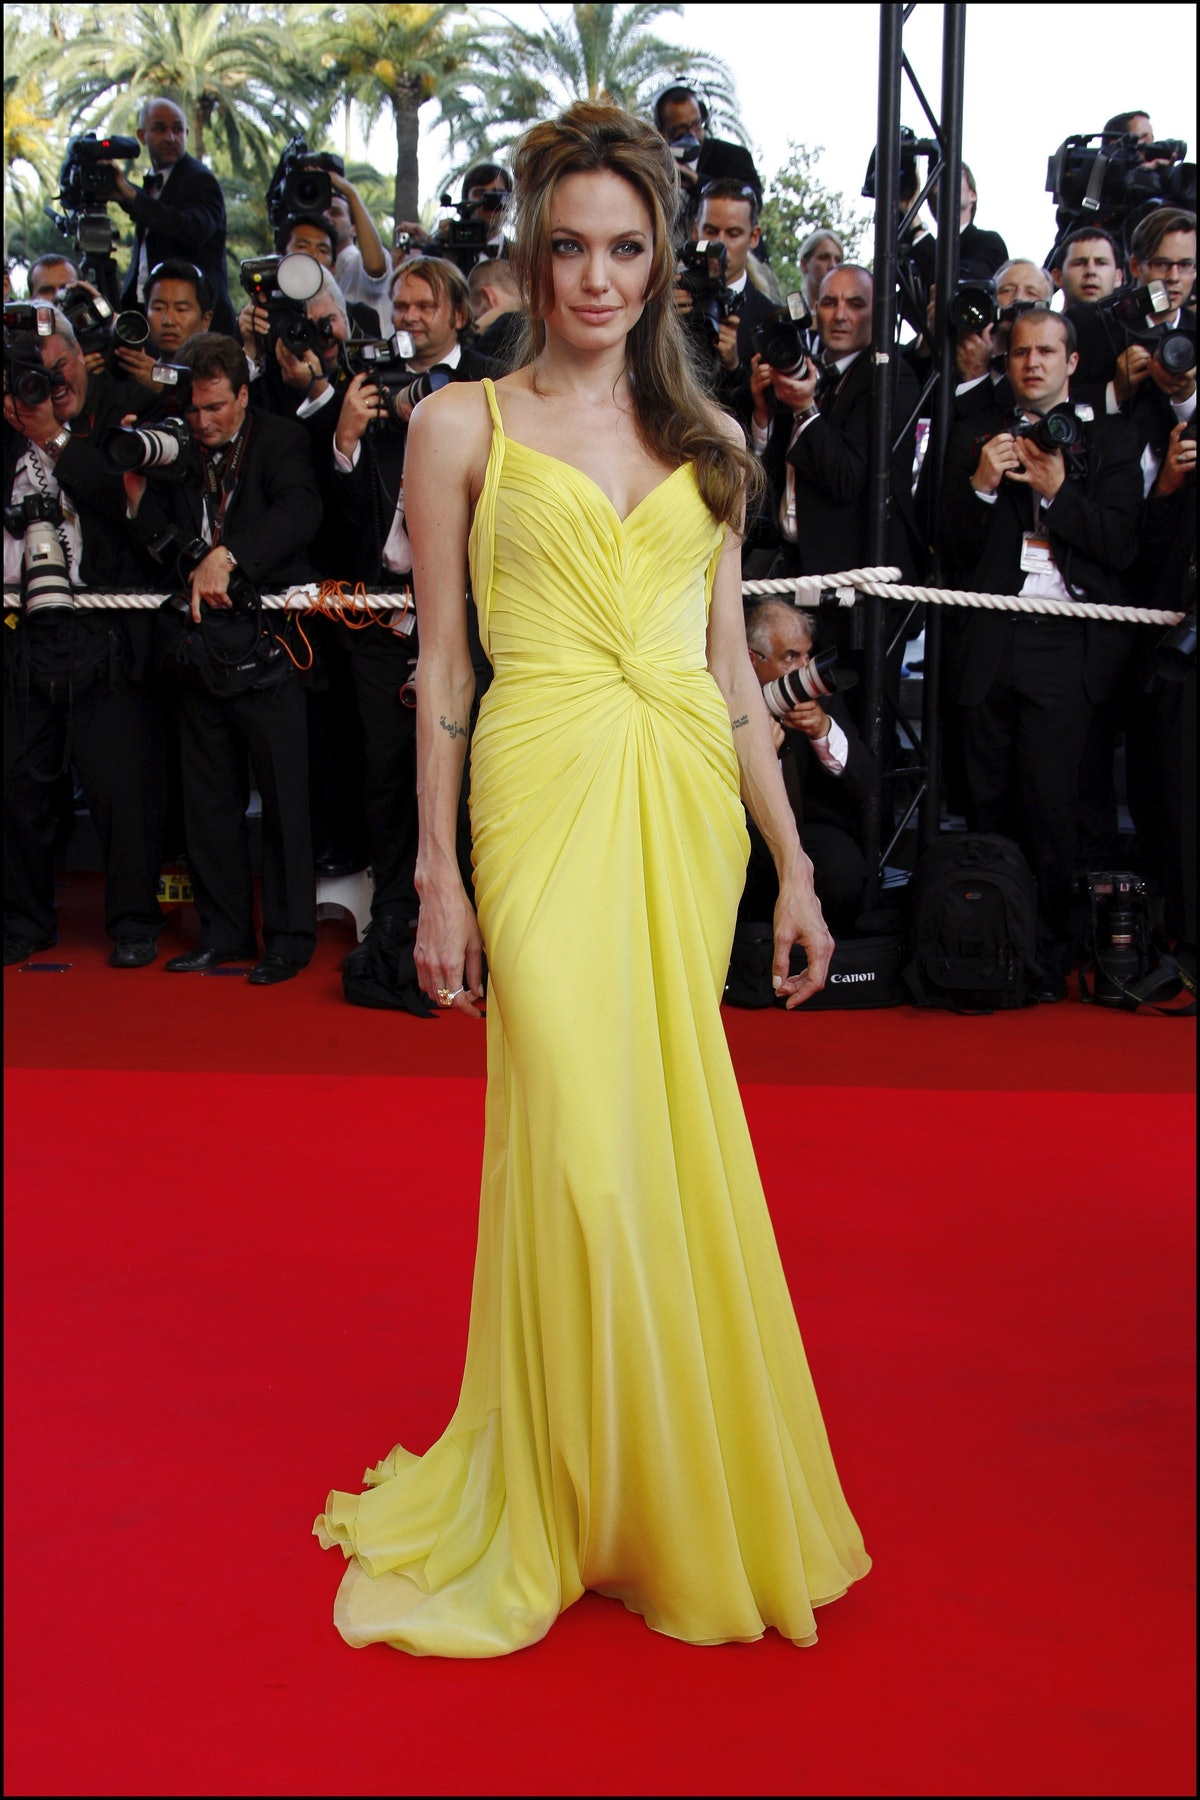 Angelina Jolie in a canary yellow gown